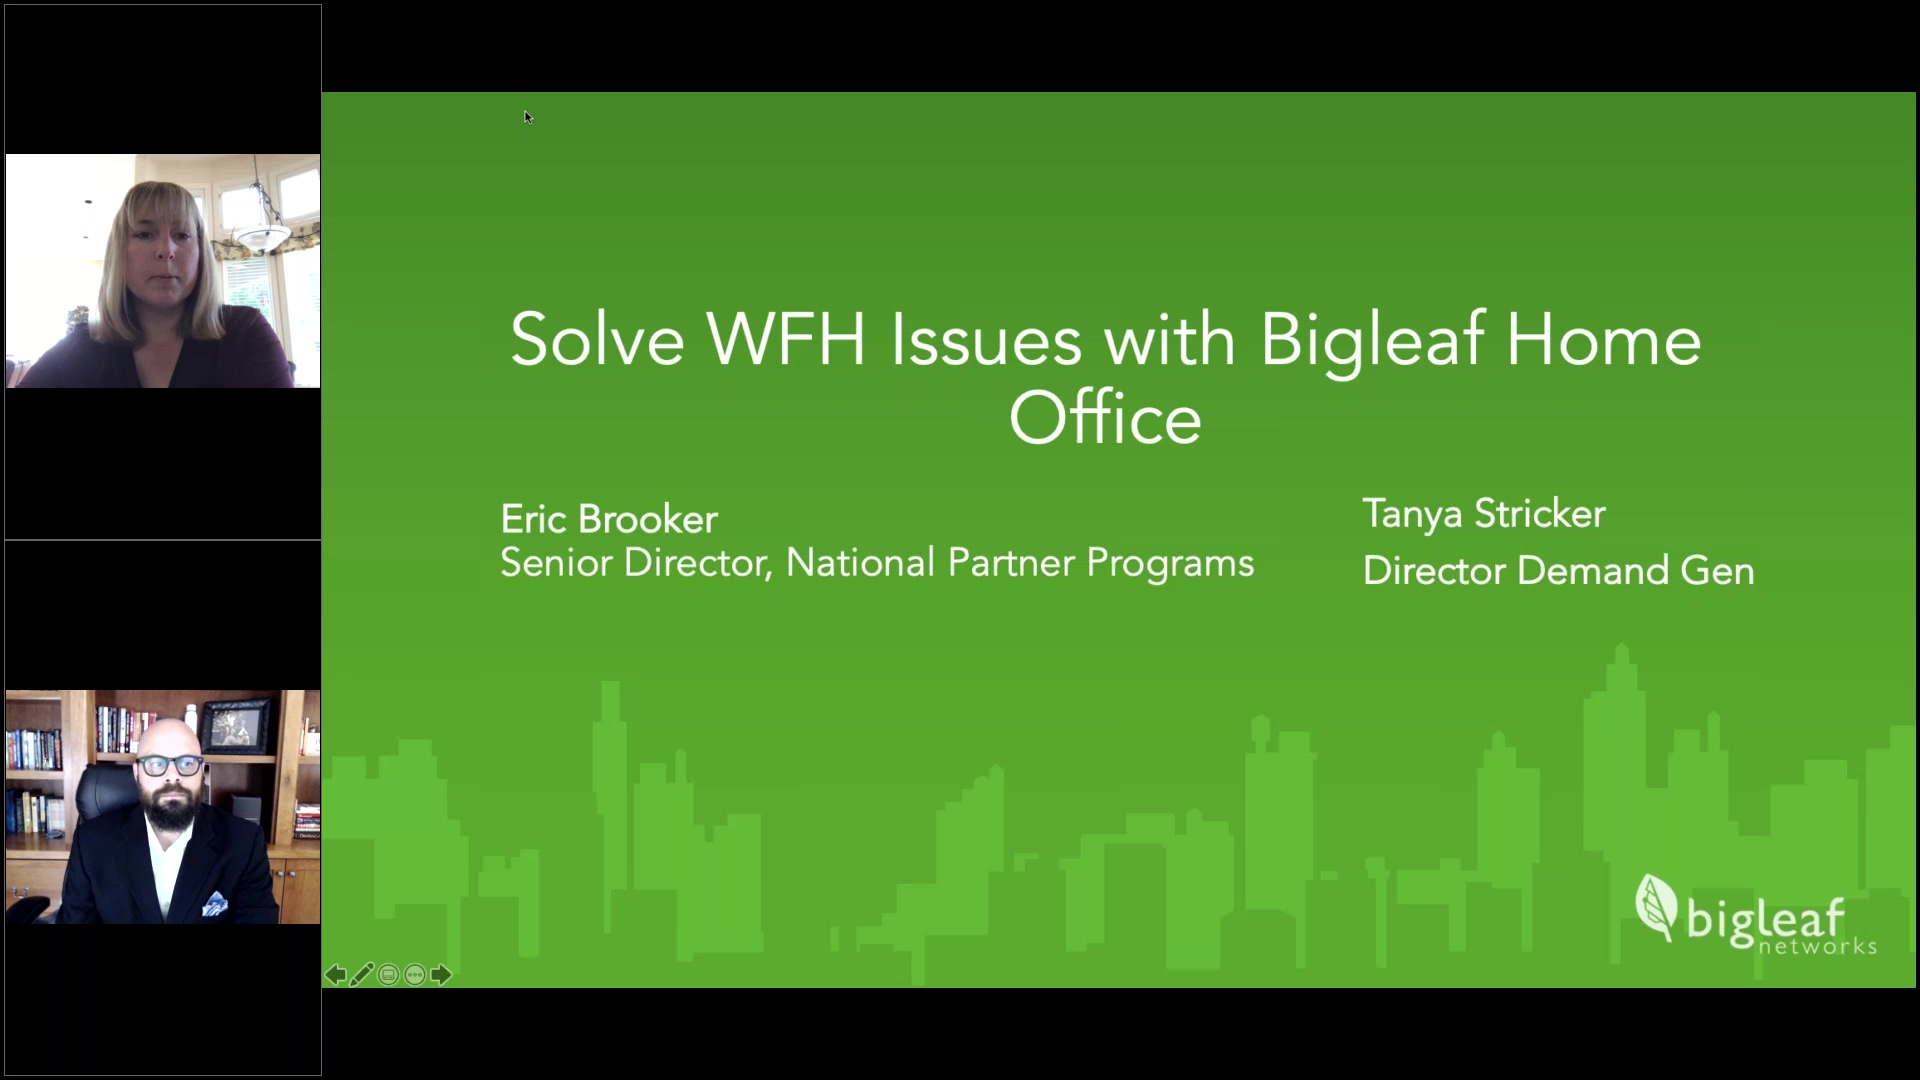 Solve WFH Network Issues with Bigleaf Home Office